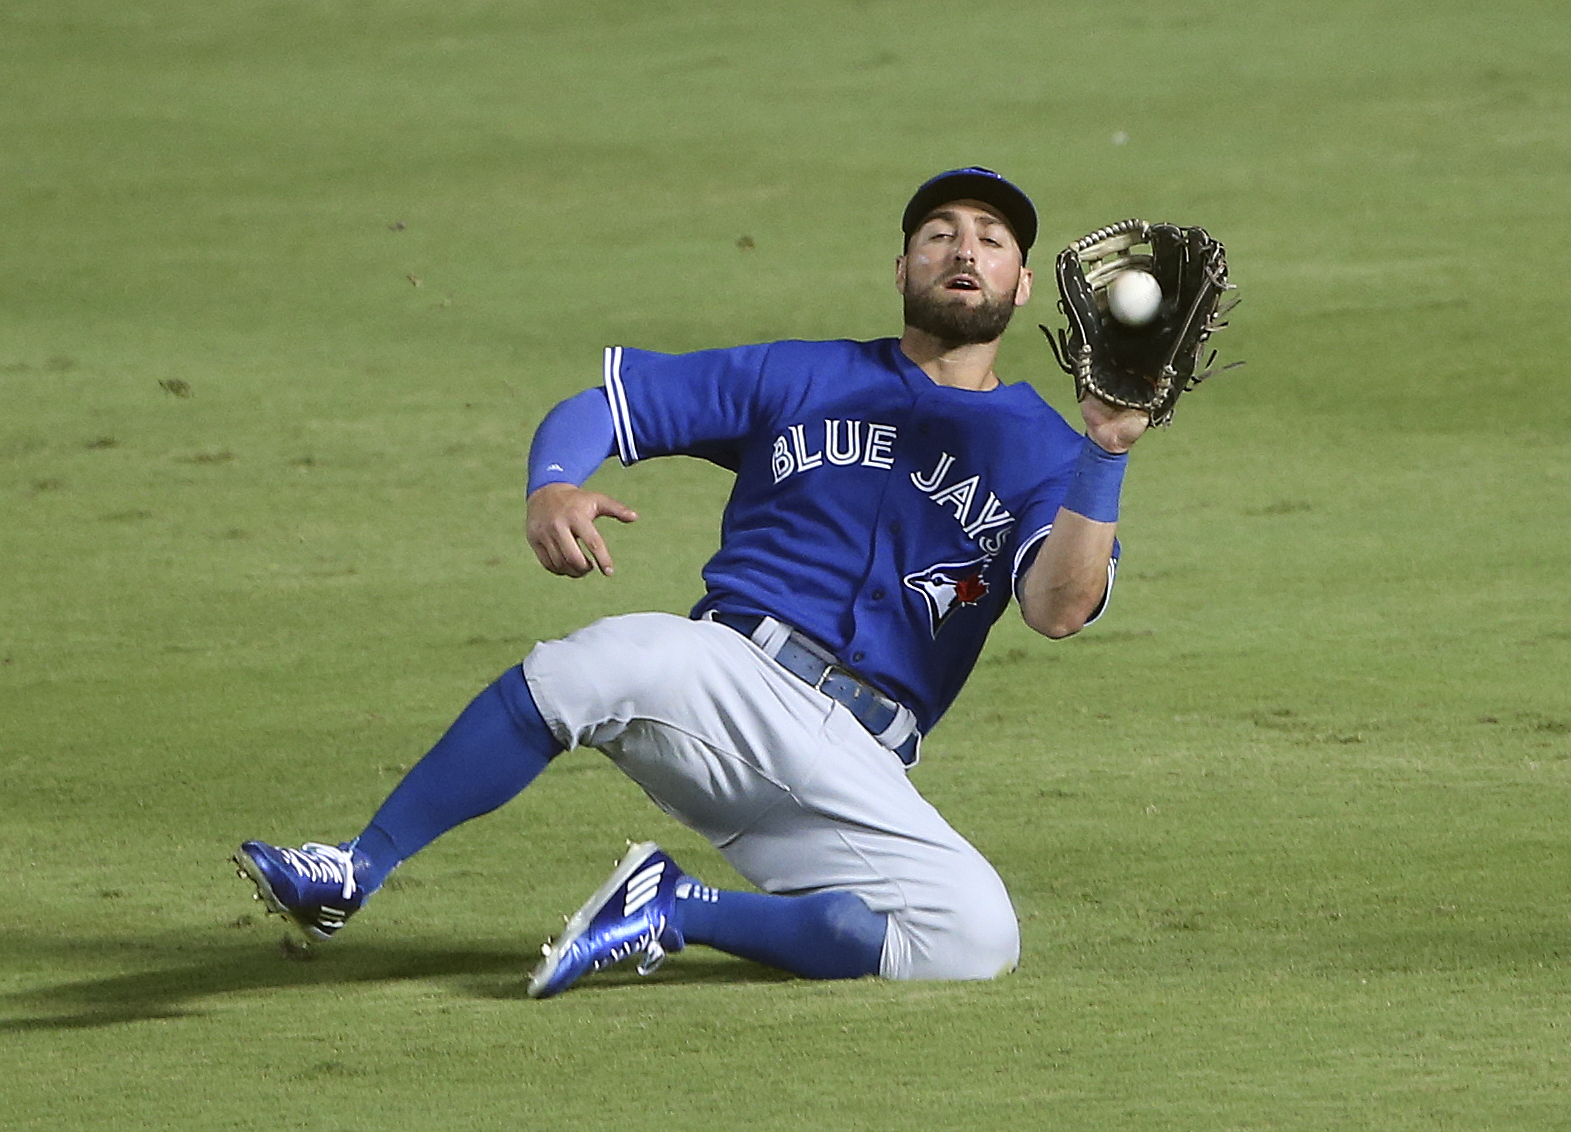 Toronto Blue Jays center fielder Kevin Pillar makes a sliding catch to retire Atlanta Braves' Nick Markakis in the fifth inning of a baseball game, Tuesday, Sept. 15, 2015, in Atlanta. (AP Photo/John Bazemore)